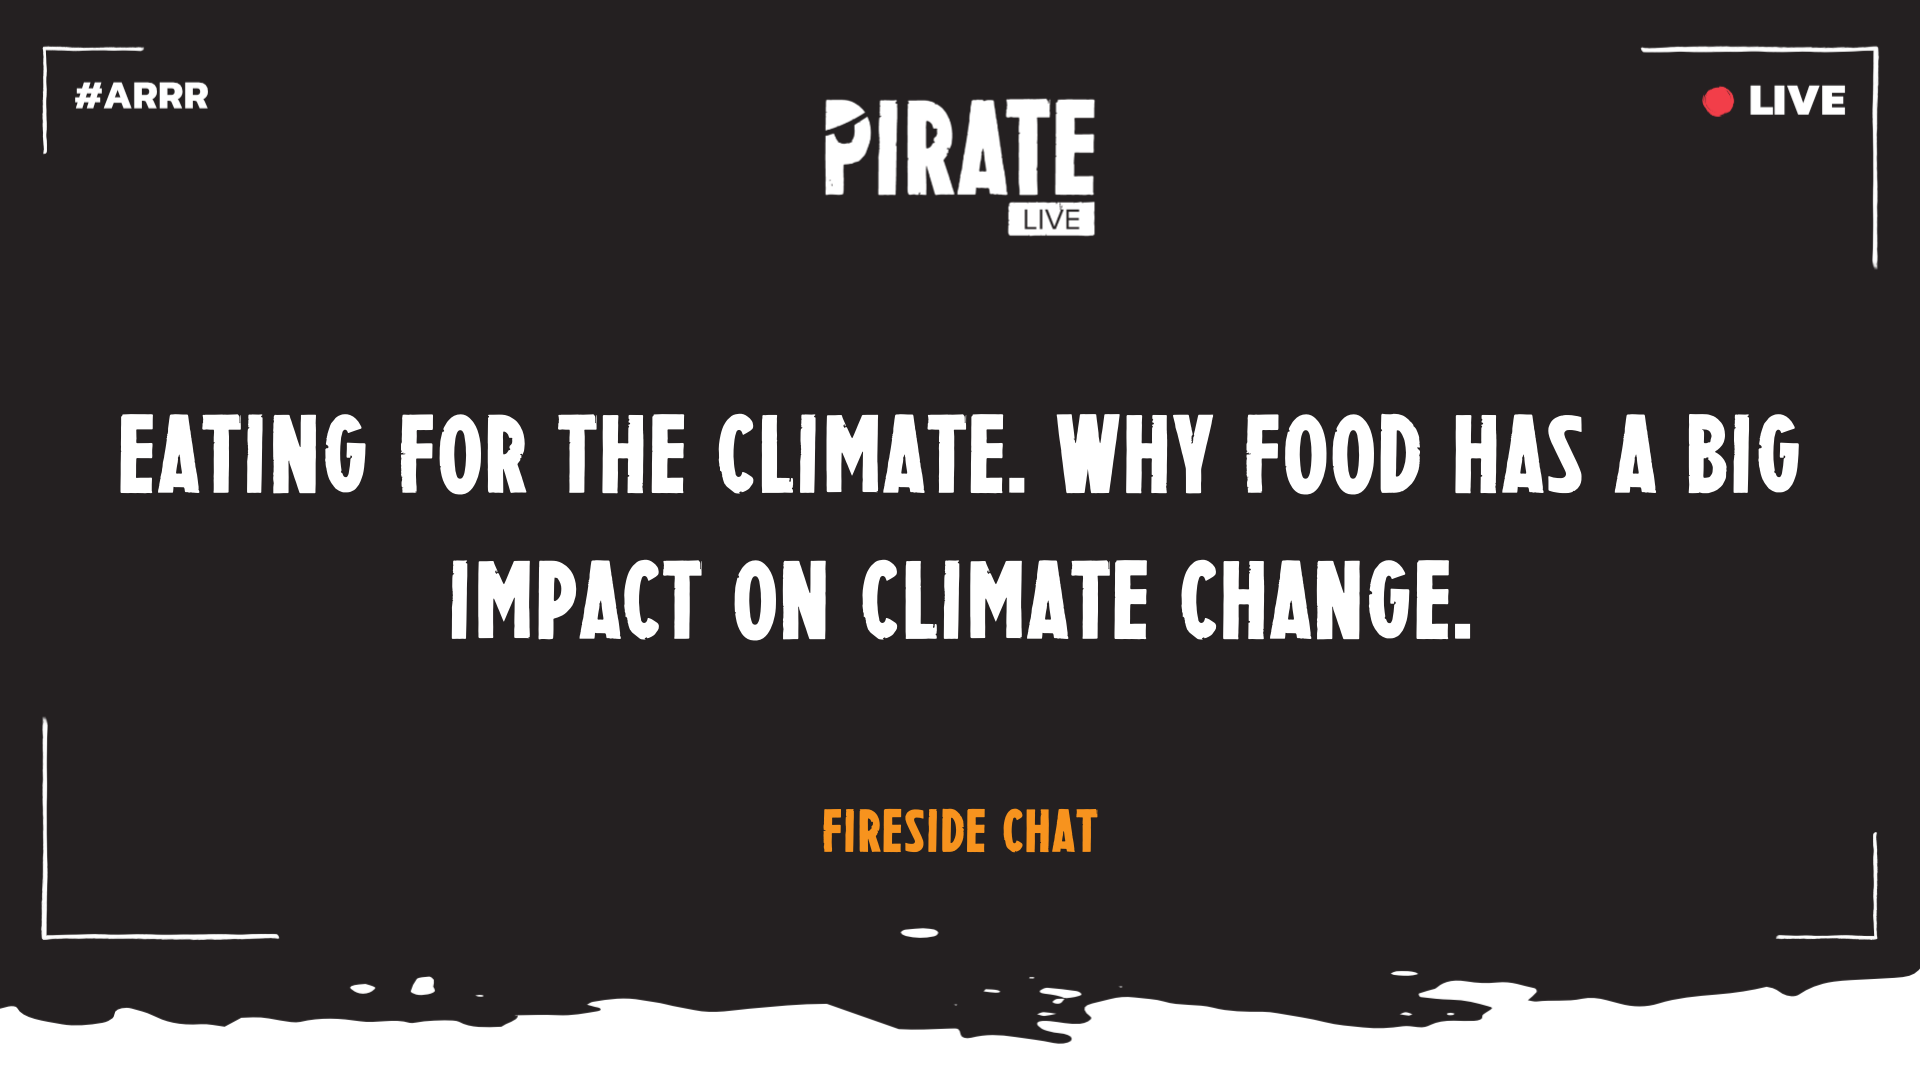 Why food has a big impact on climate change.